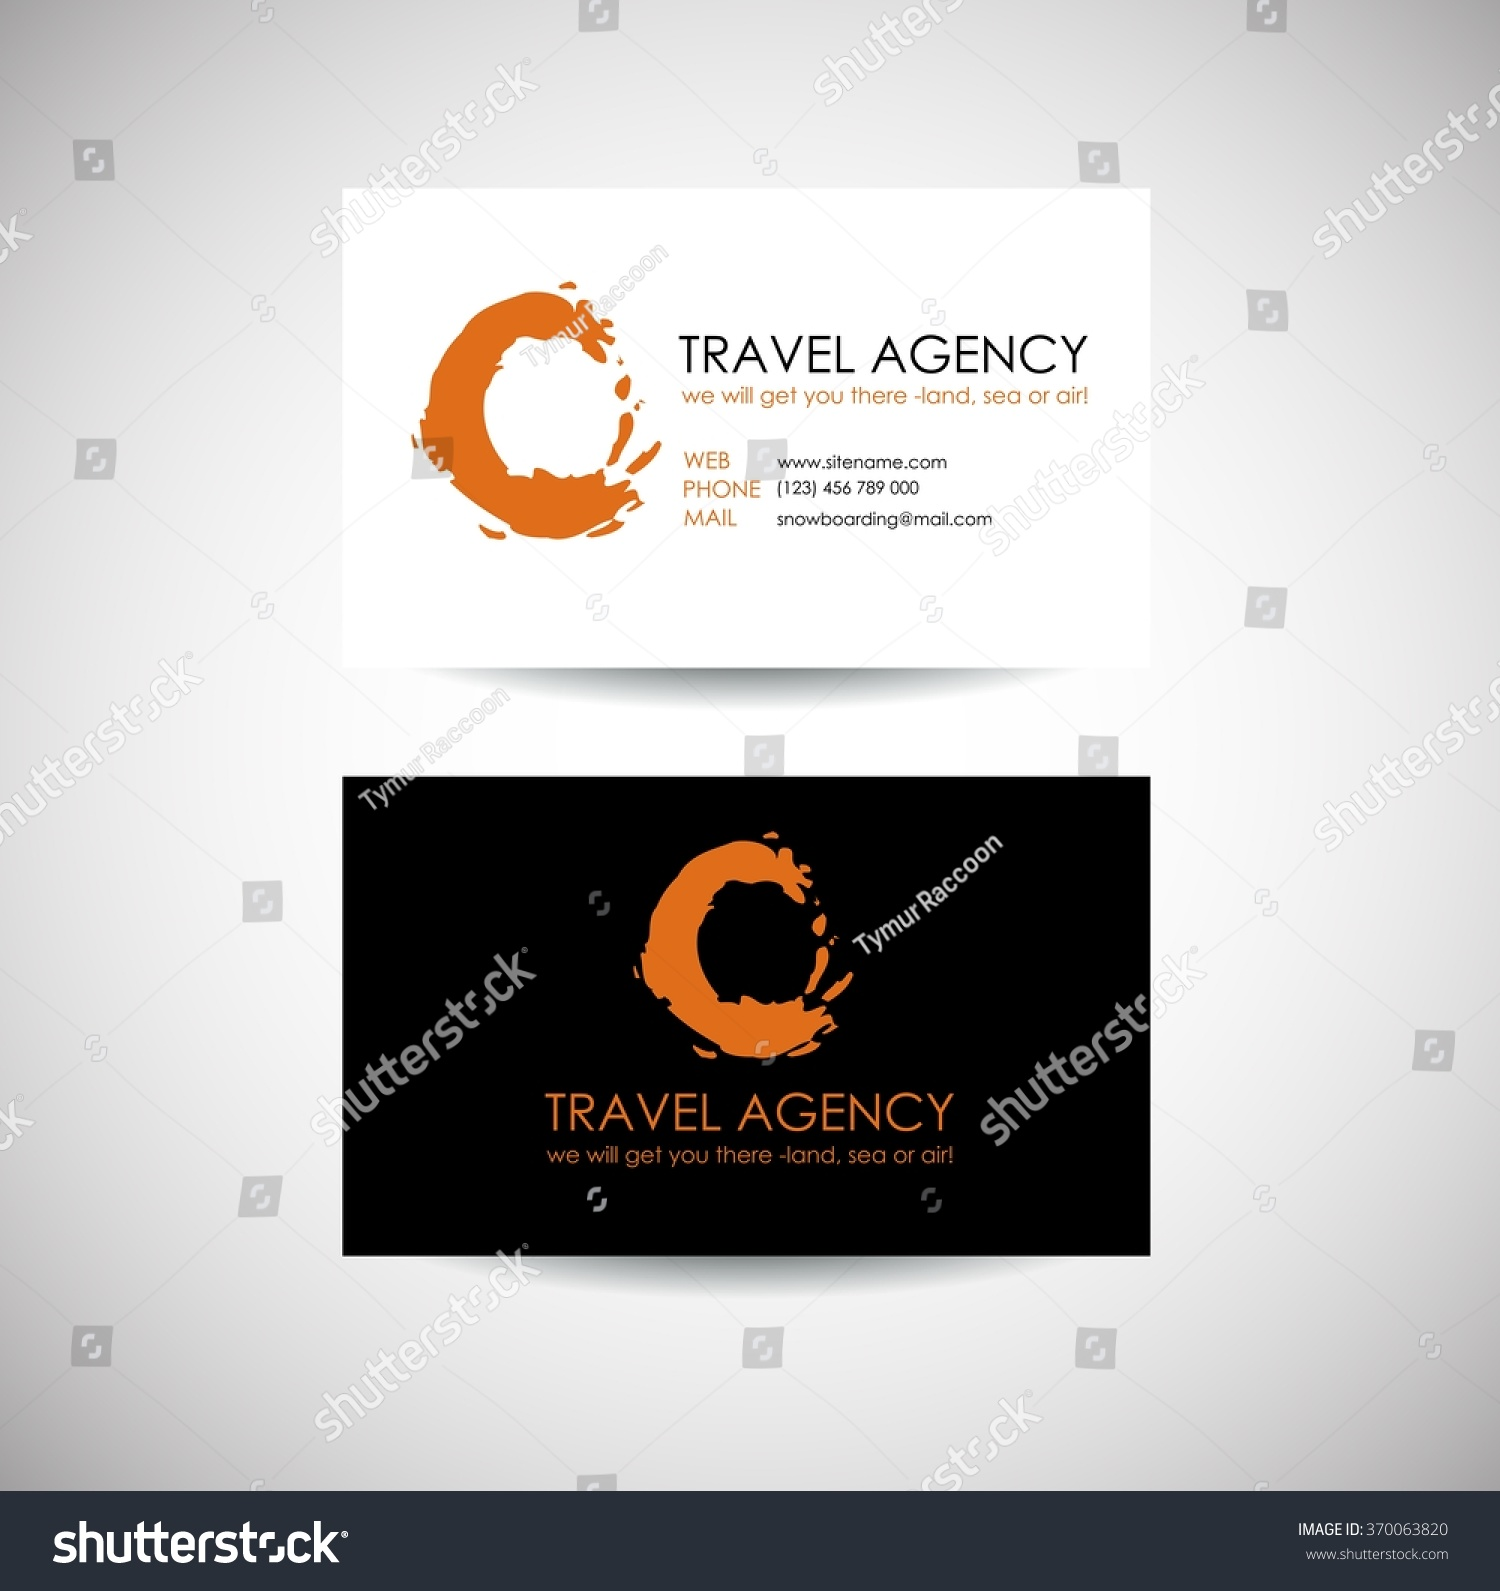 Travel agency business card template travel stock vector 370063820 travel agency business card template travel agency logo design idea magicingreecefo Choice Image